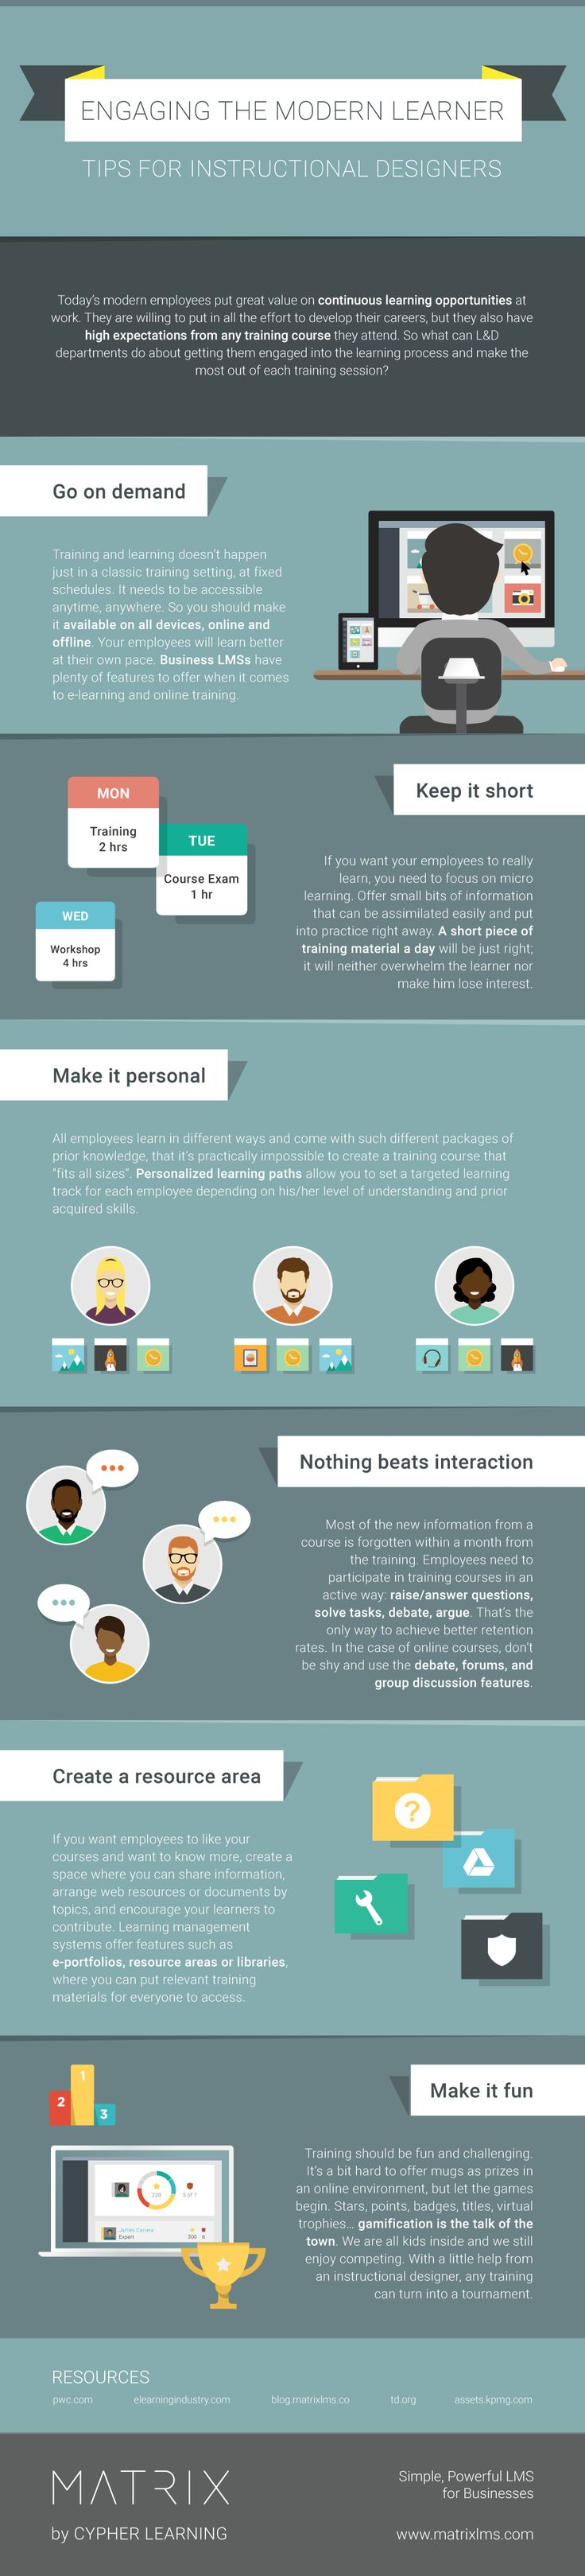 Engaging the Modern Learner Infographic - http://elearninginfographics.com/engaging-the-modern-learner-infographic/